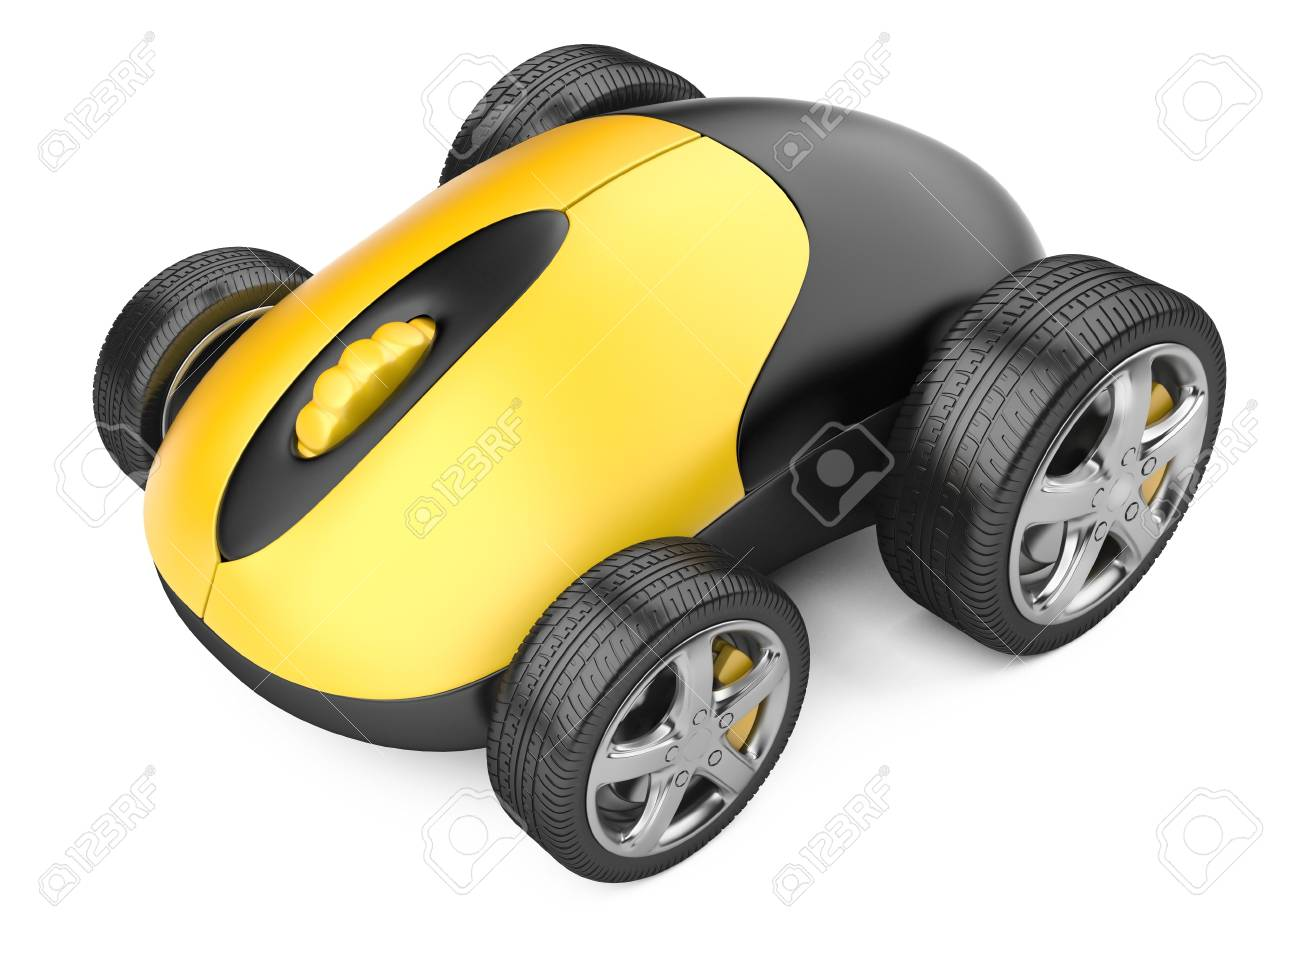 Computer mouse with wheels - 3d image isolated on a white - 20038993